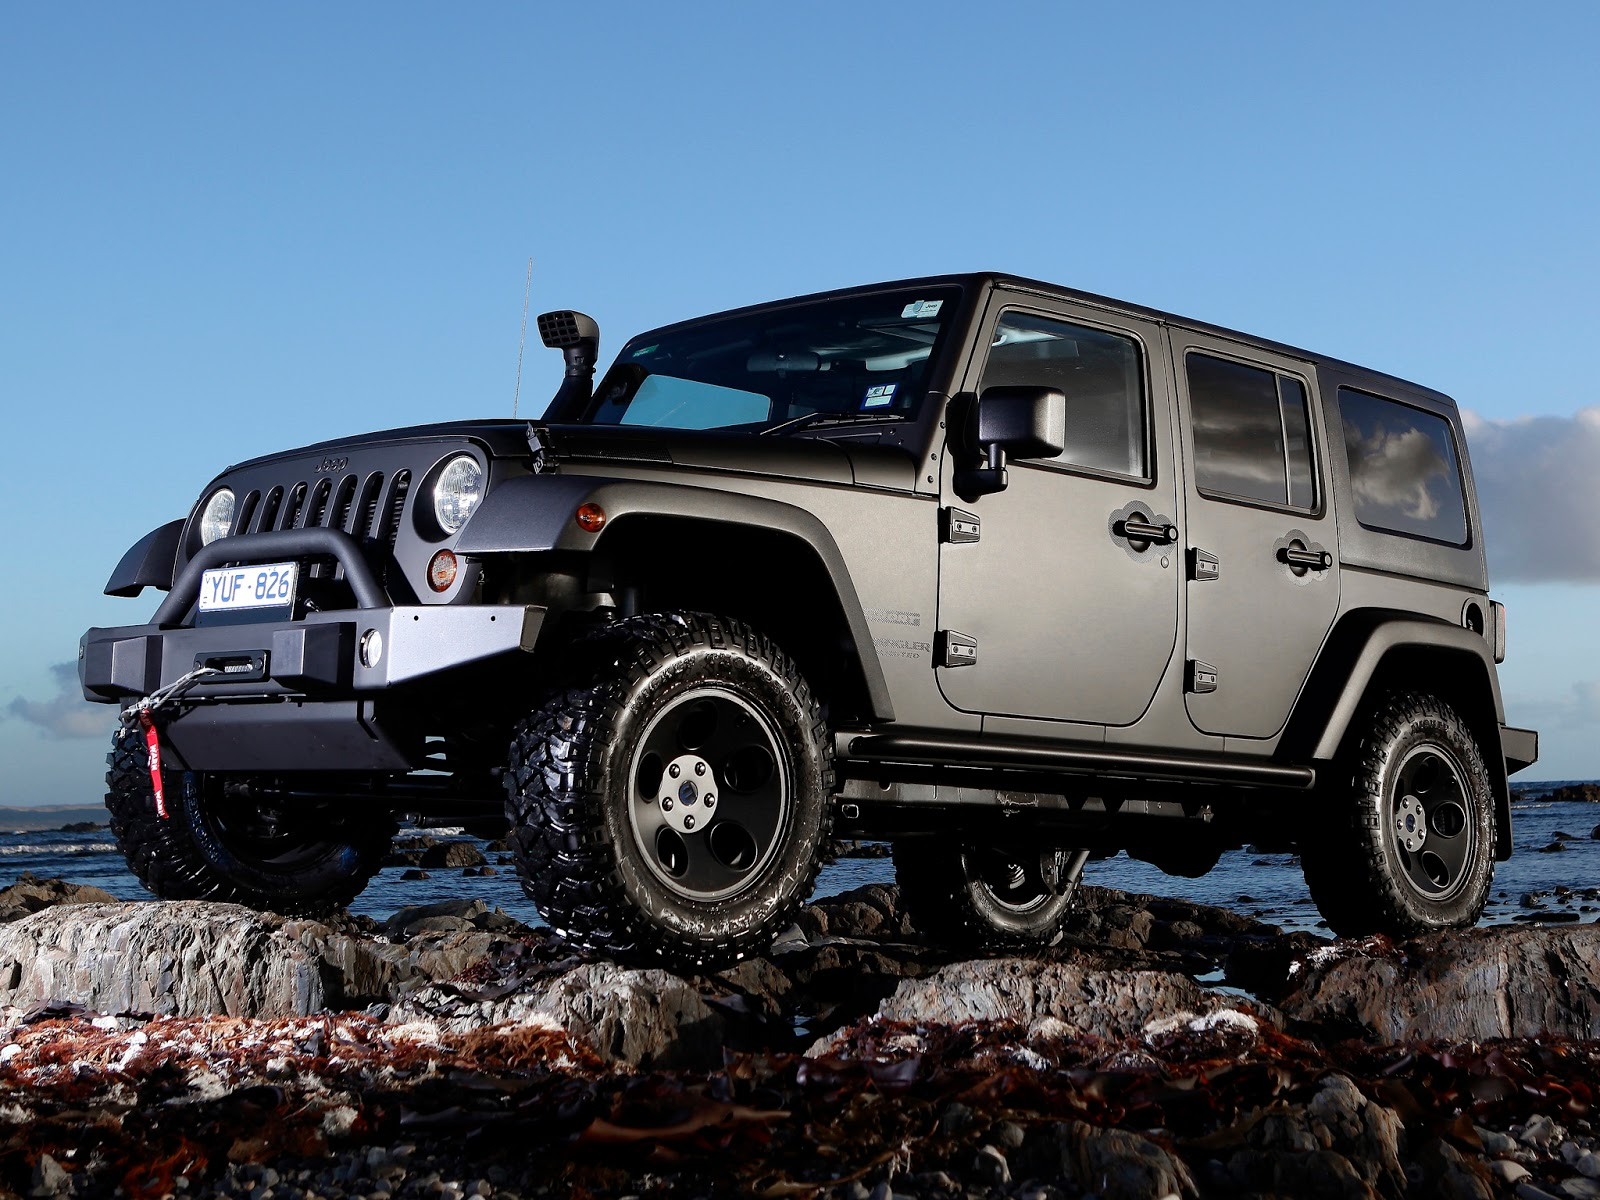 jeep wrangler for sale in edmonton calgary alberta features that will make you fall in love. Black Bedroom Furniture Sets. Home Design Ideas